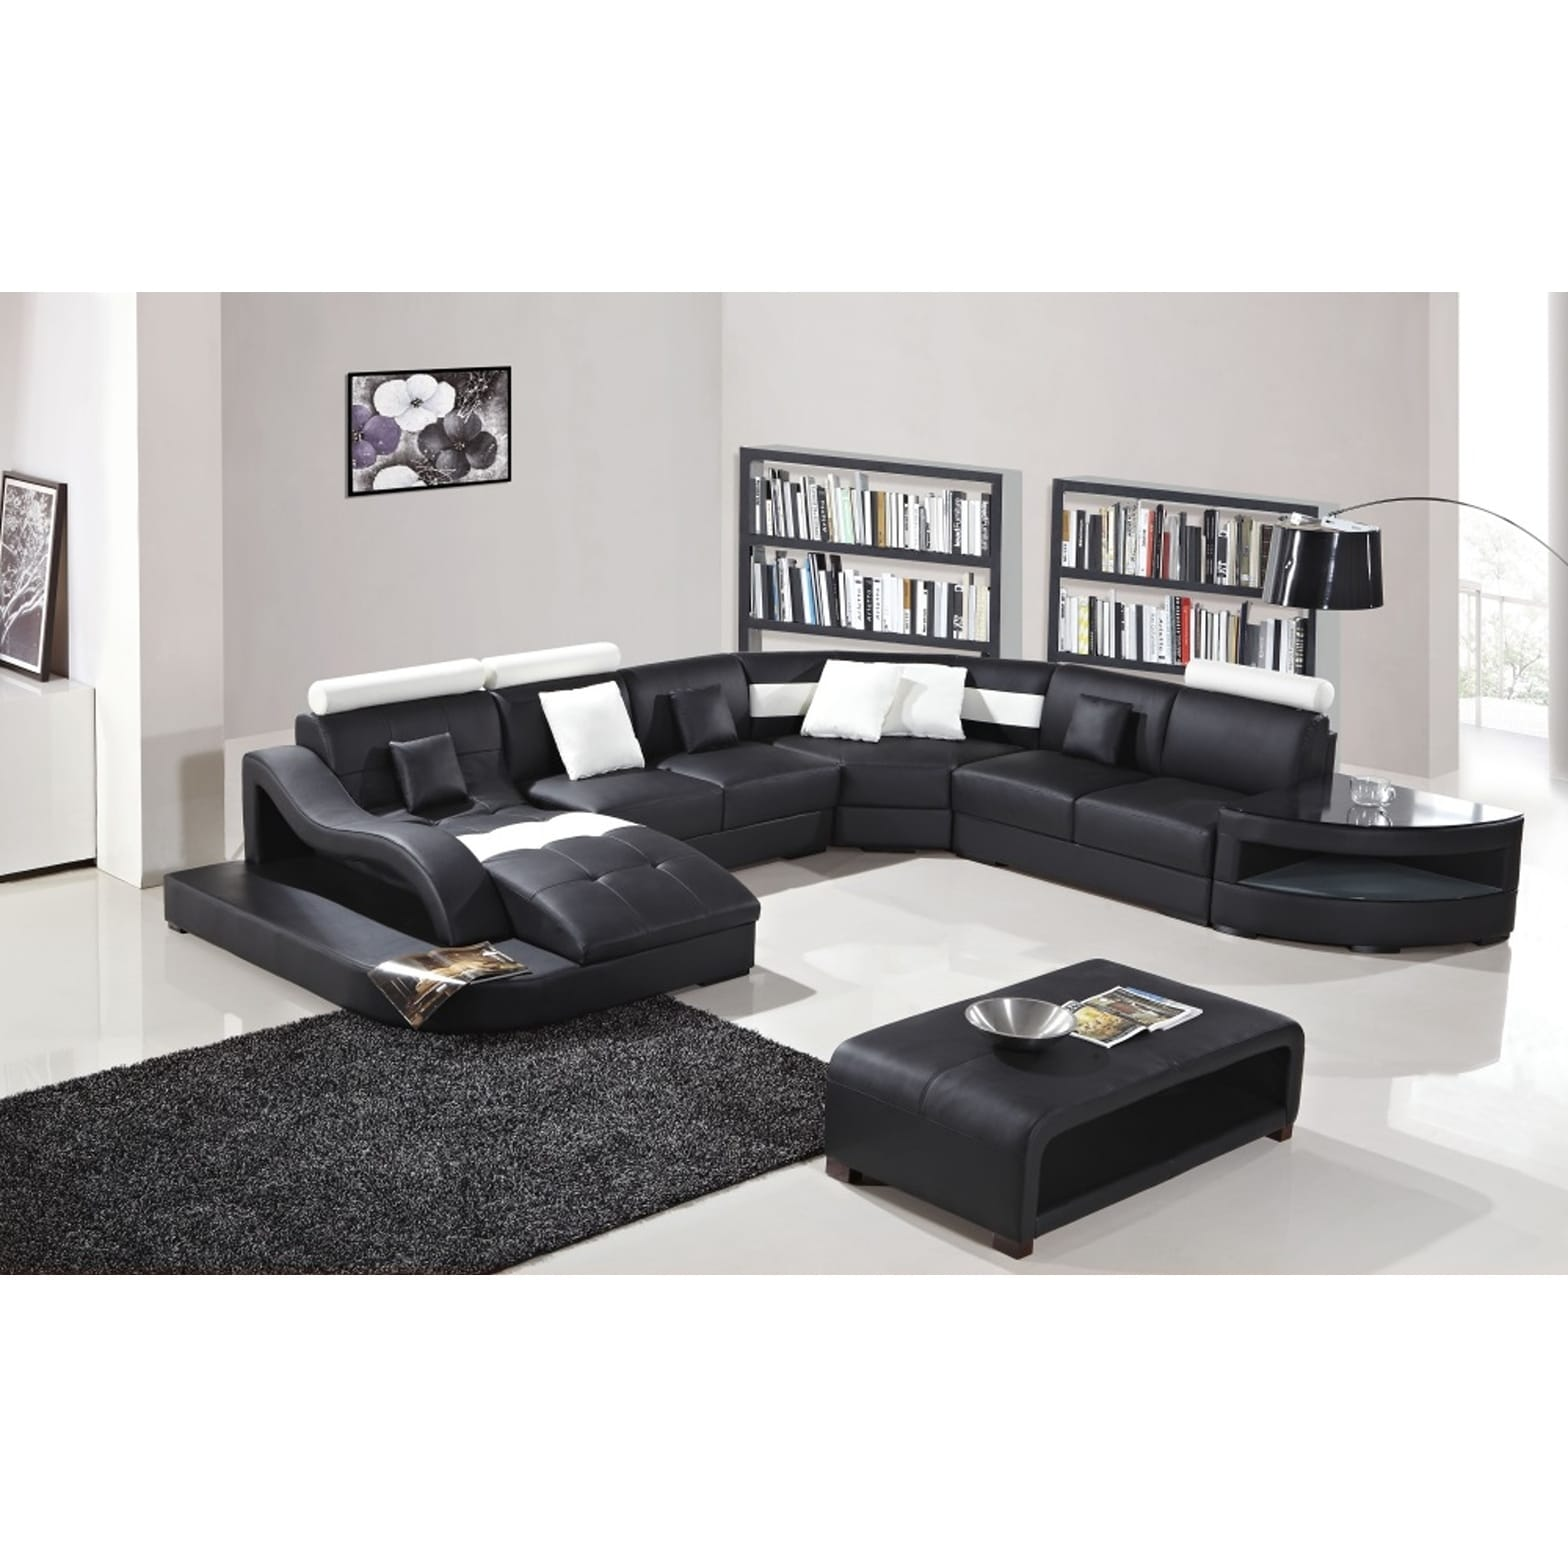 Black And White Modern Contemporary Real Leather Sectional Living Room Set With Chaise Lounge Storage Shelves And Coffee Table